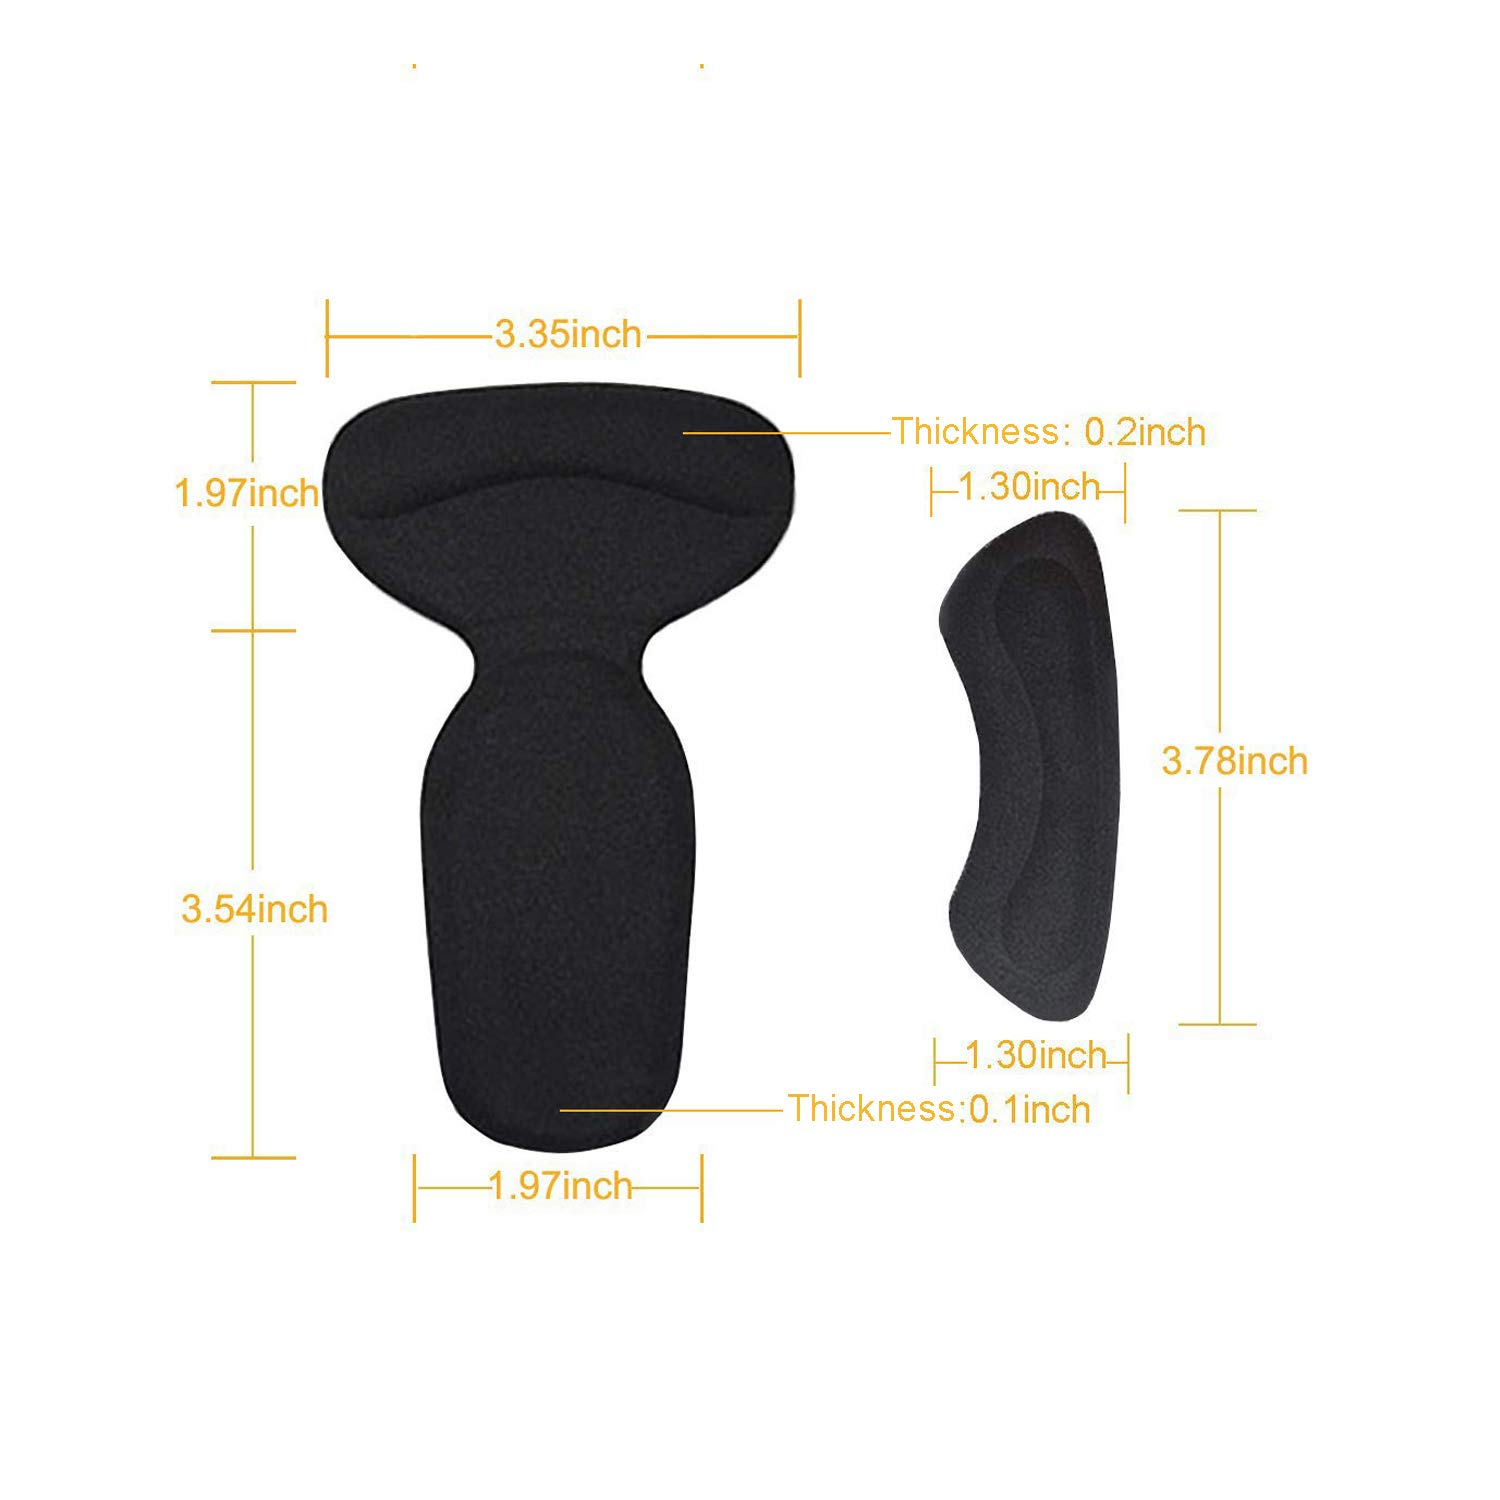 Clear Heel Cushion Inserts Heel Pain Relief Bunion Callus Blisters- 6 Pairs Reusable Soft Shoe Inserts Heel Cushion Pads Self-Adhesive Foot Care Protector Grips Liners Loose Shoes